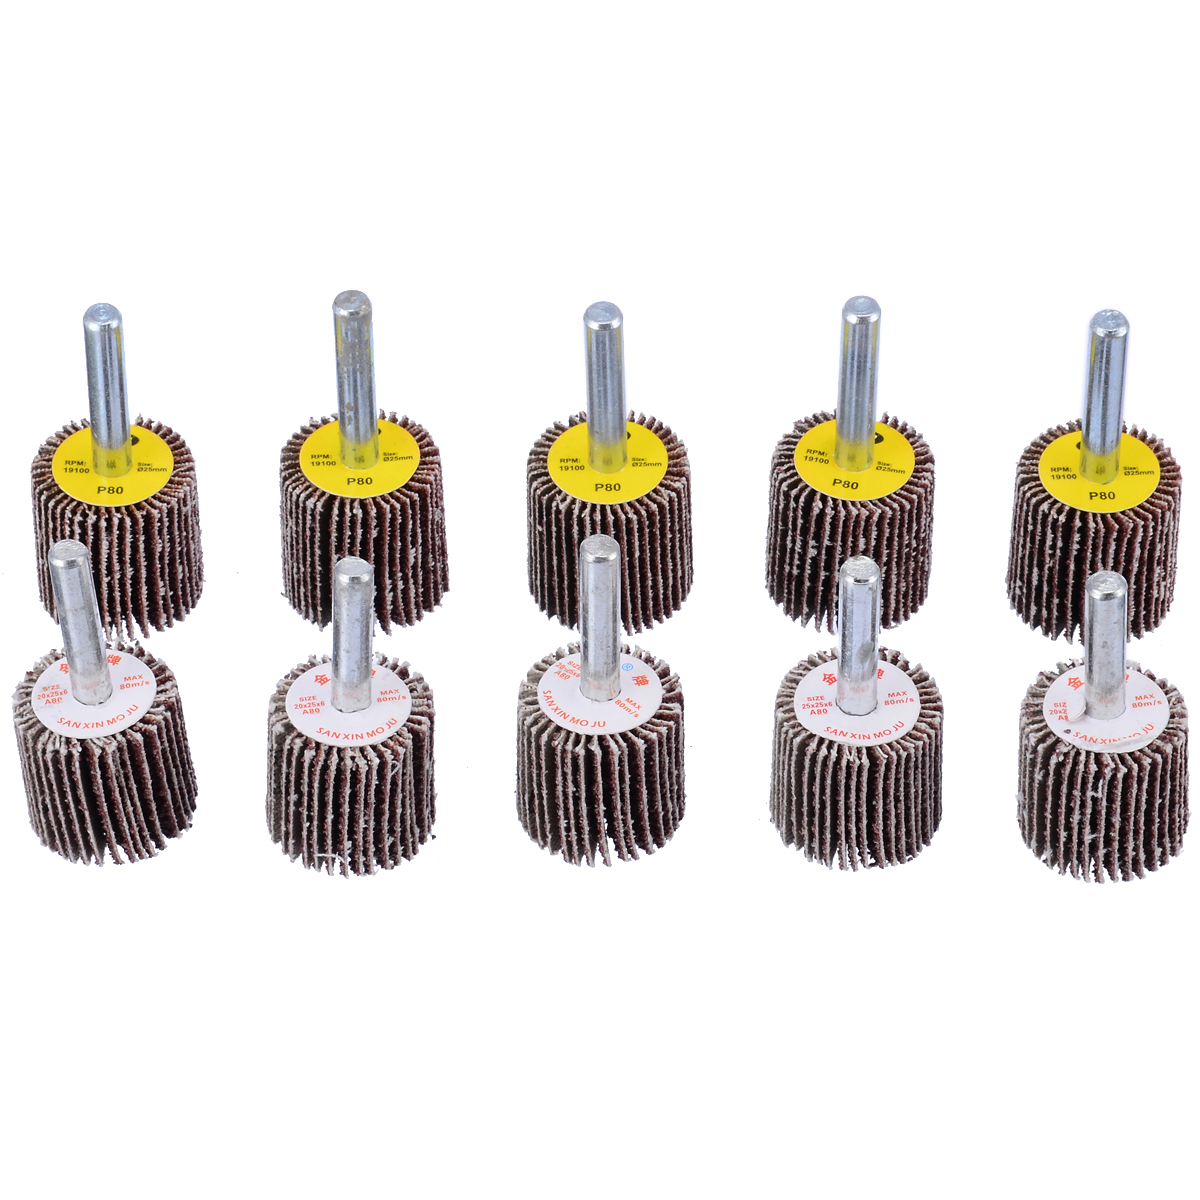 10pcs 50mm Grinding Polish Wheel 40/80 Grit Sanding Flap Disc Drill Abrasive Tool For Stainless Steel Pipe